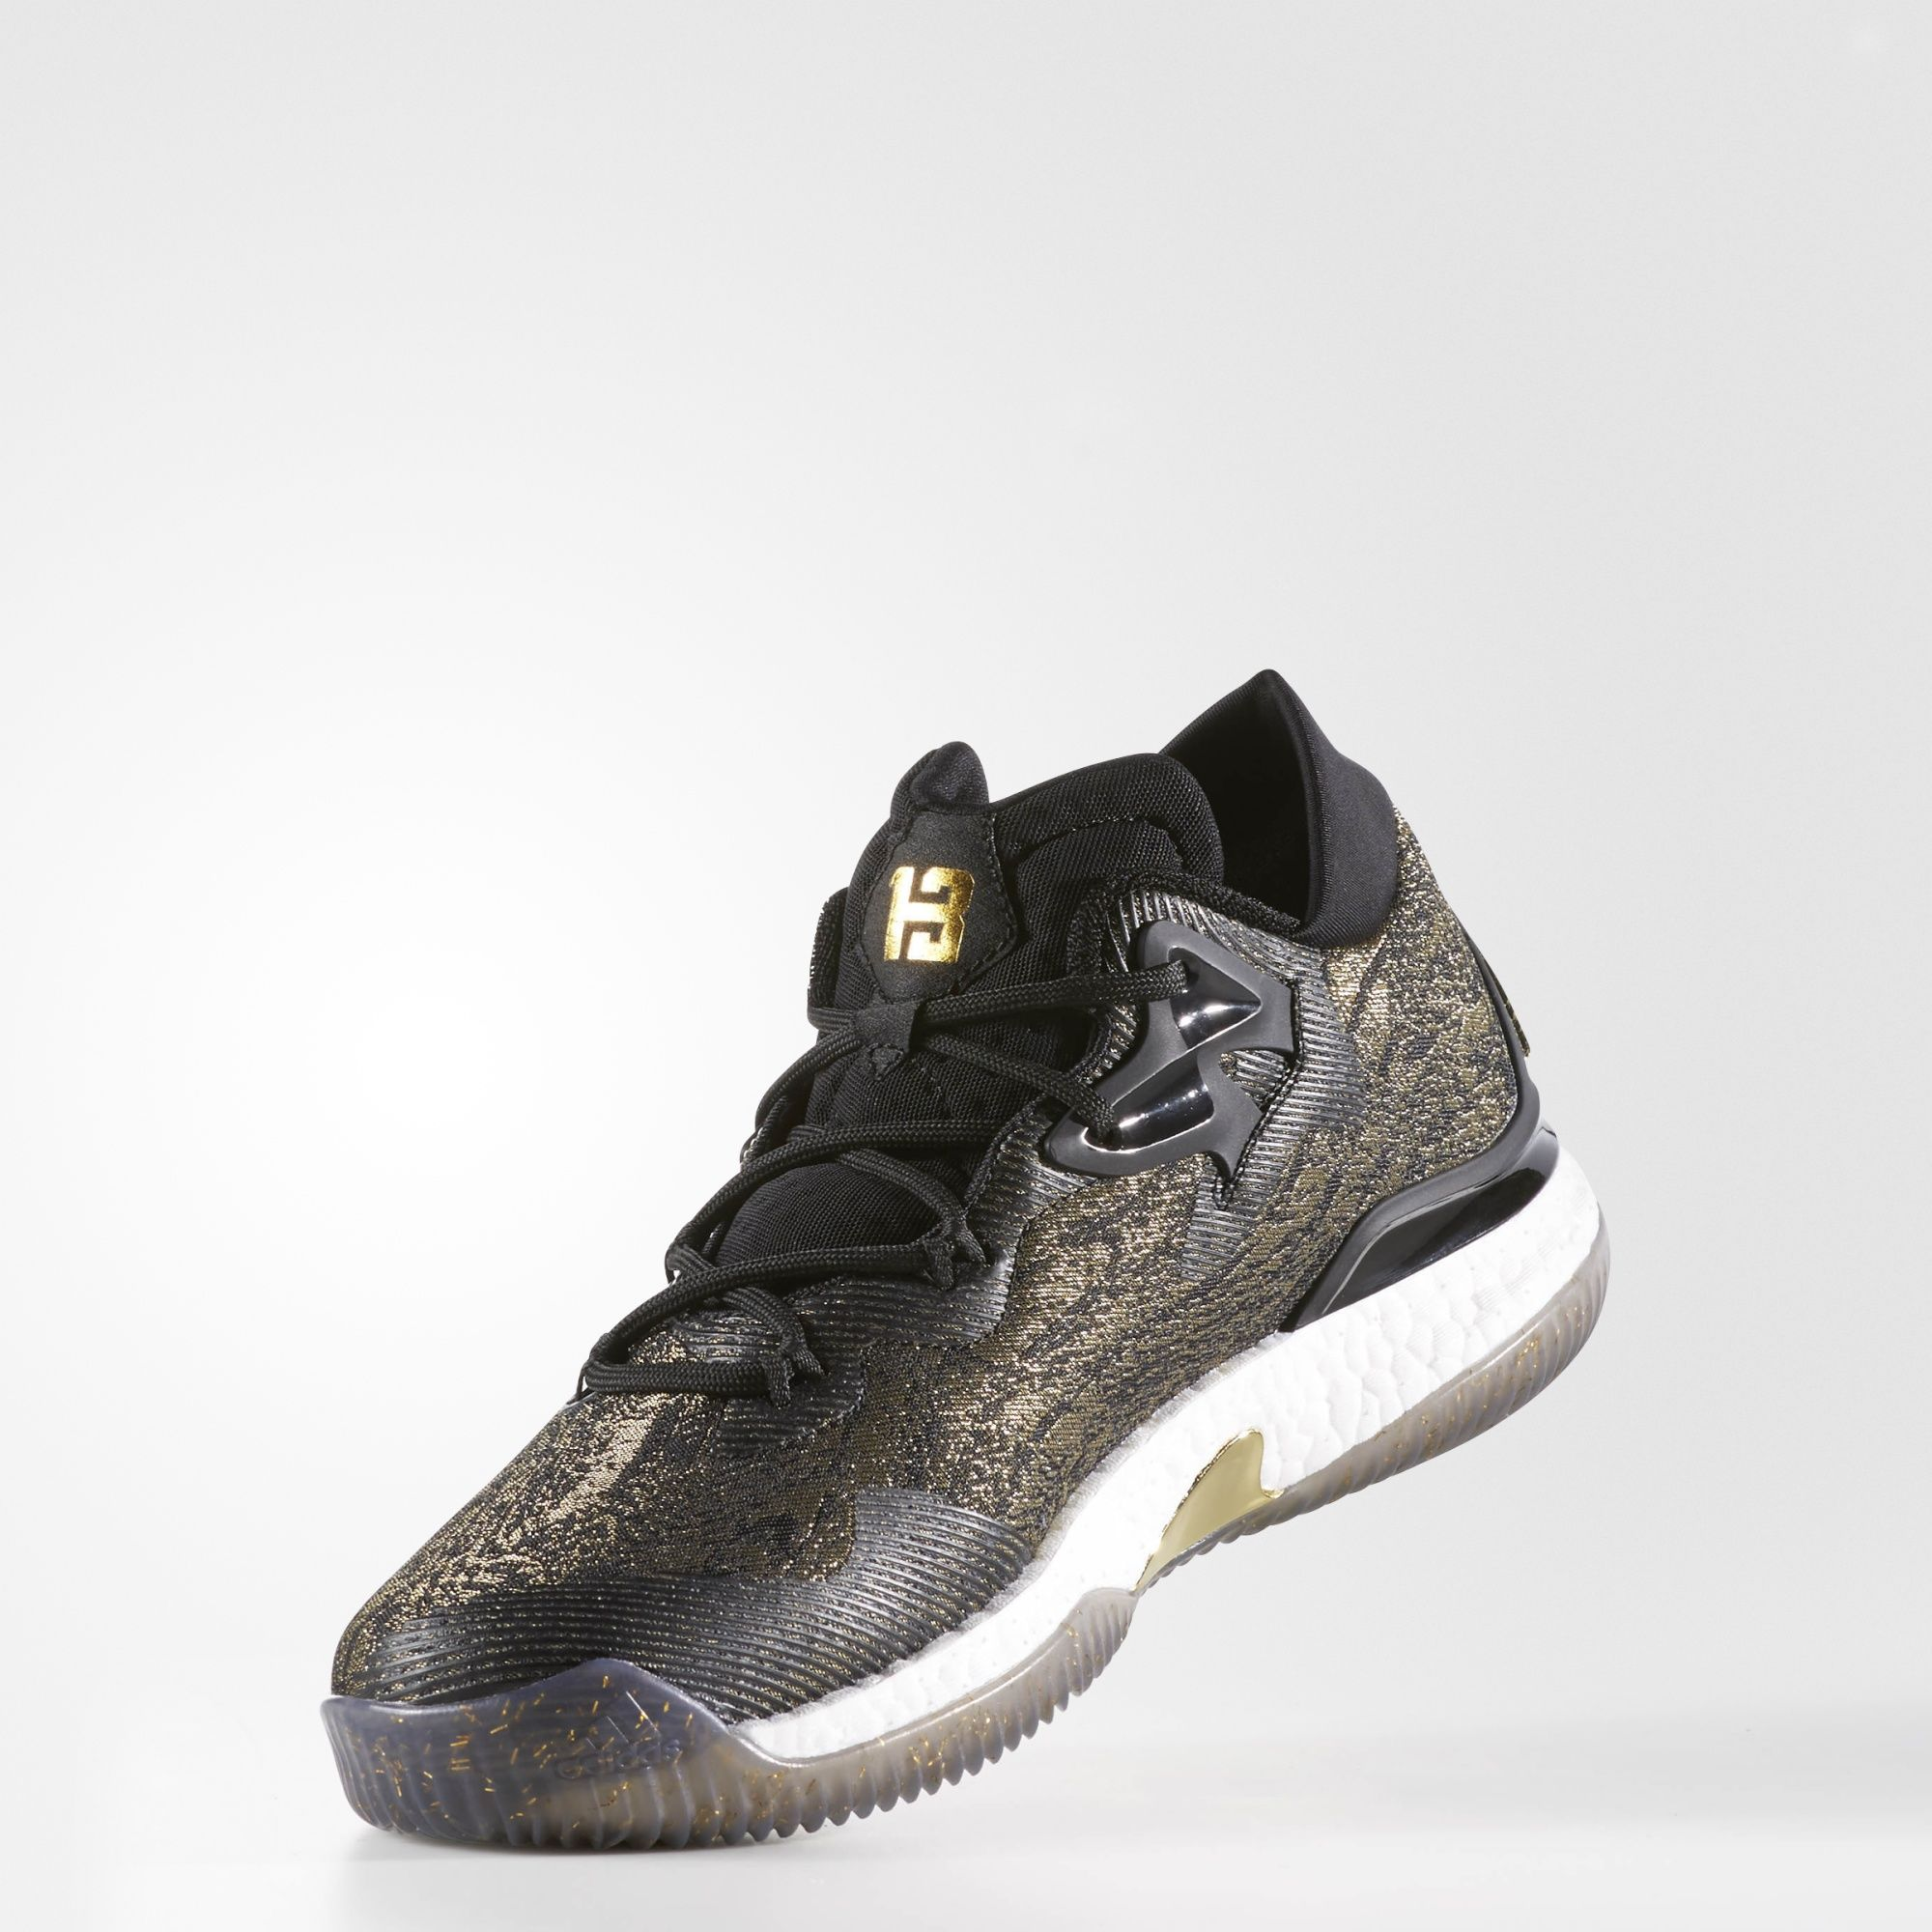 2530f8002697 ... closeout adidas crazylight boost 2016 black gold angle d7f77 8c045